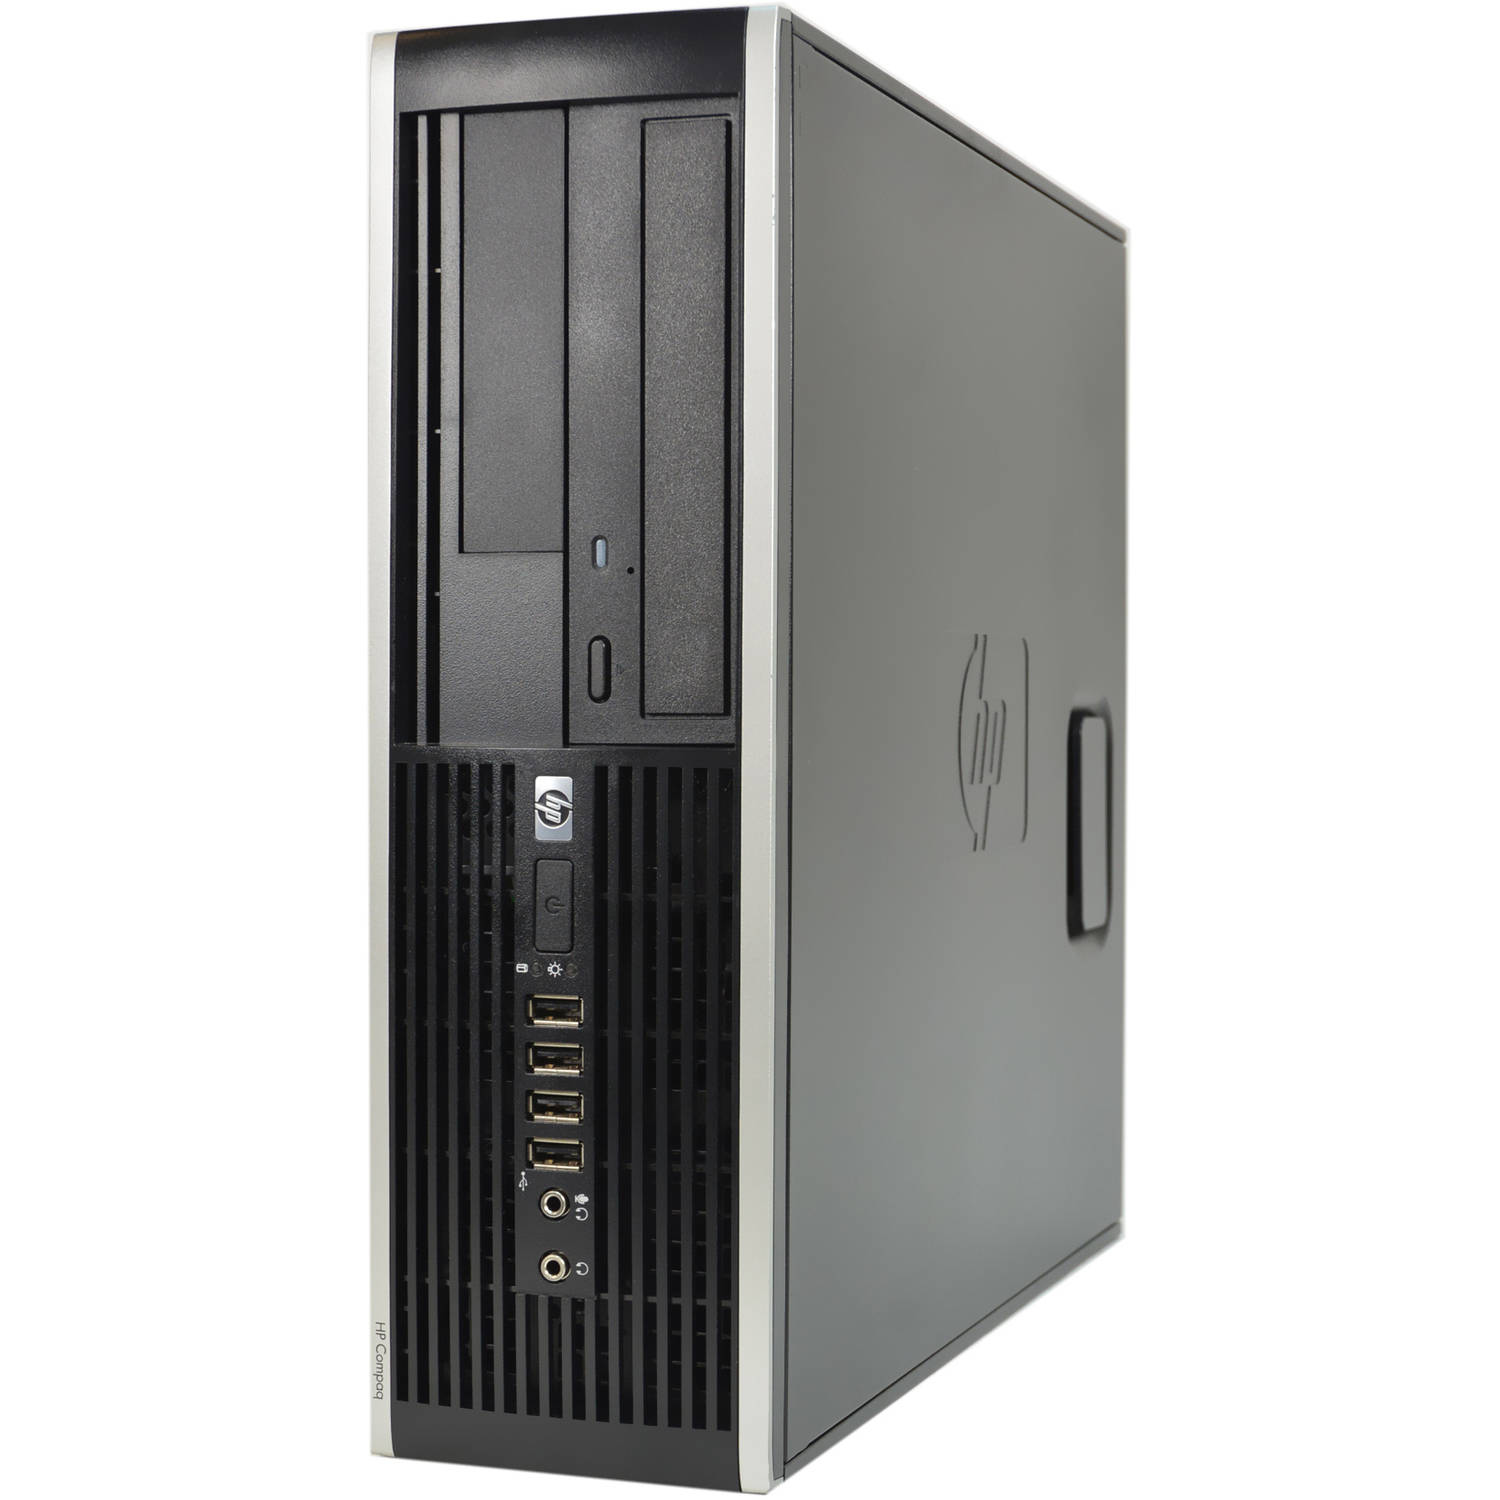 Refurbished HP Black 6005 Pro Desktop PC with AMD Atholon II X2 Processor, 4GB Memory, 750GB Hard Drive and Windows 10 Home (Monitor Not Included)